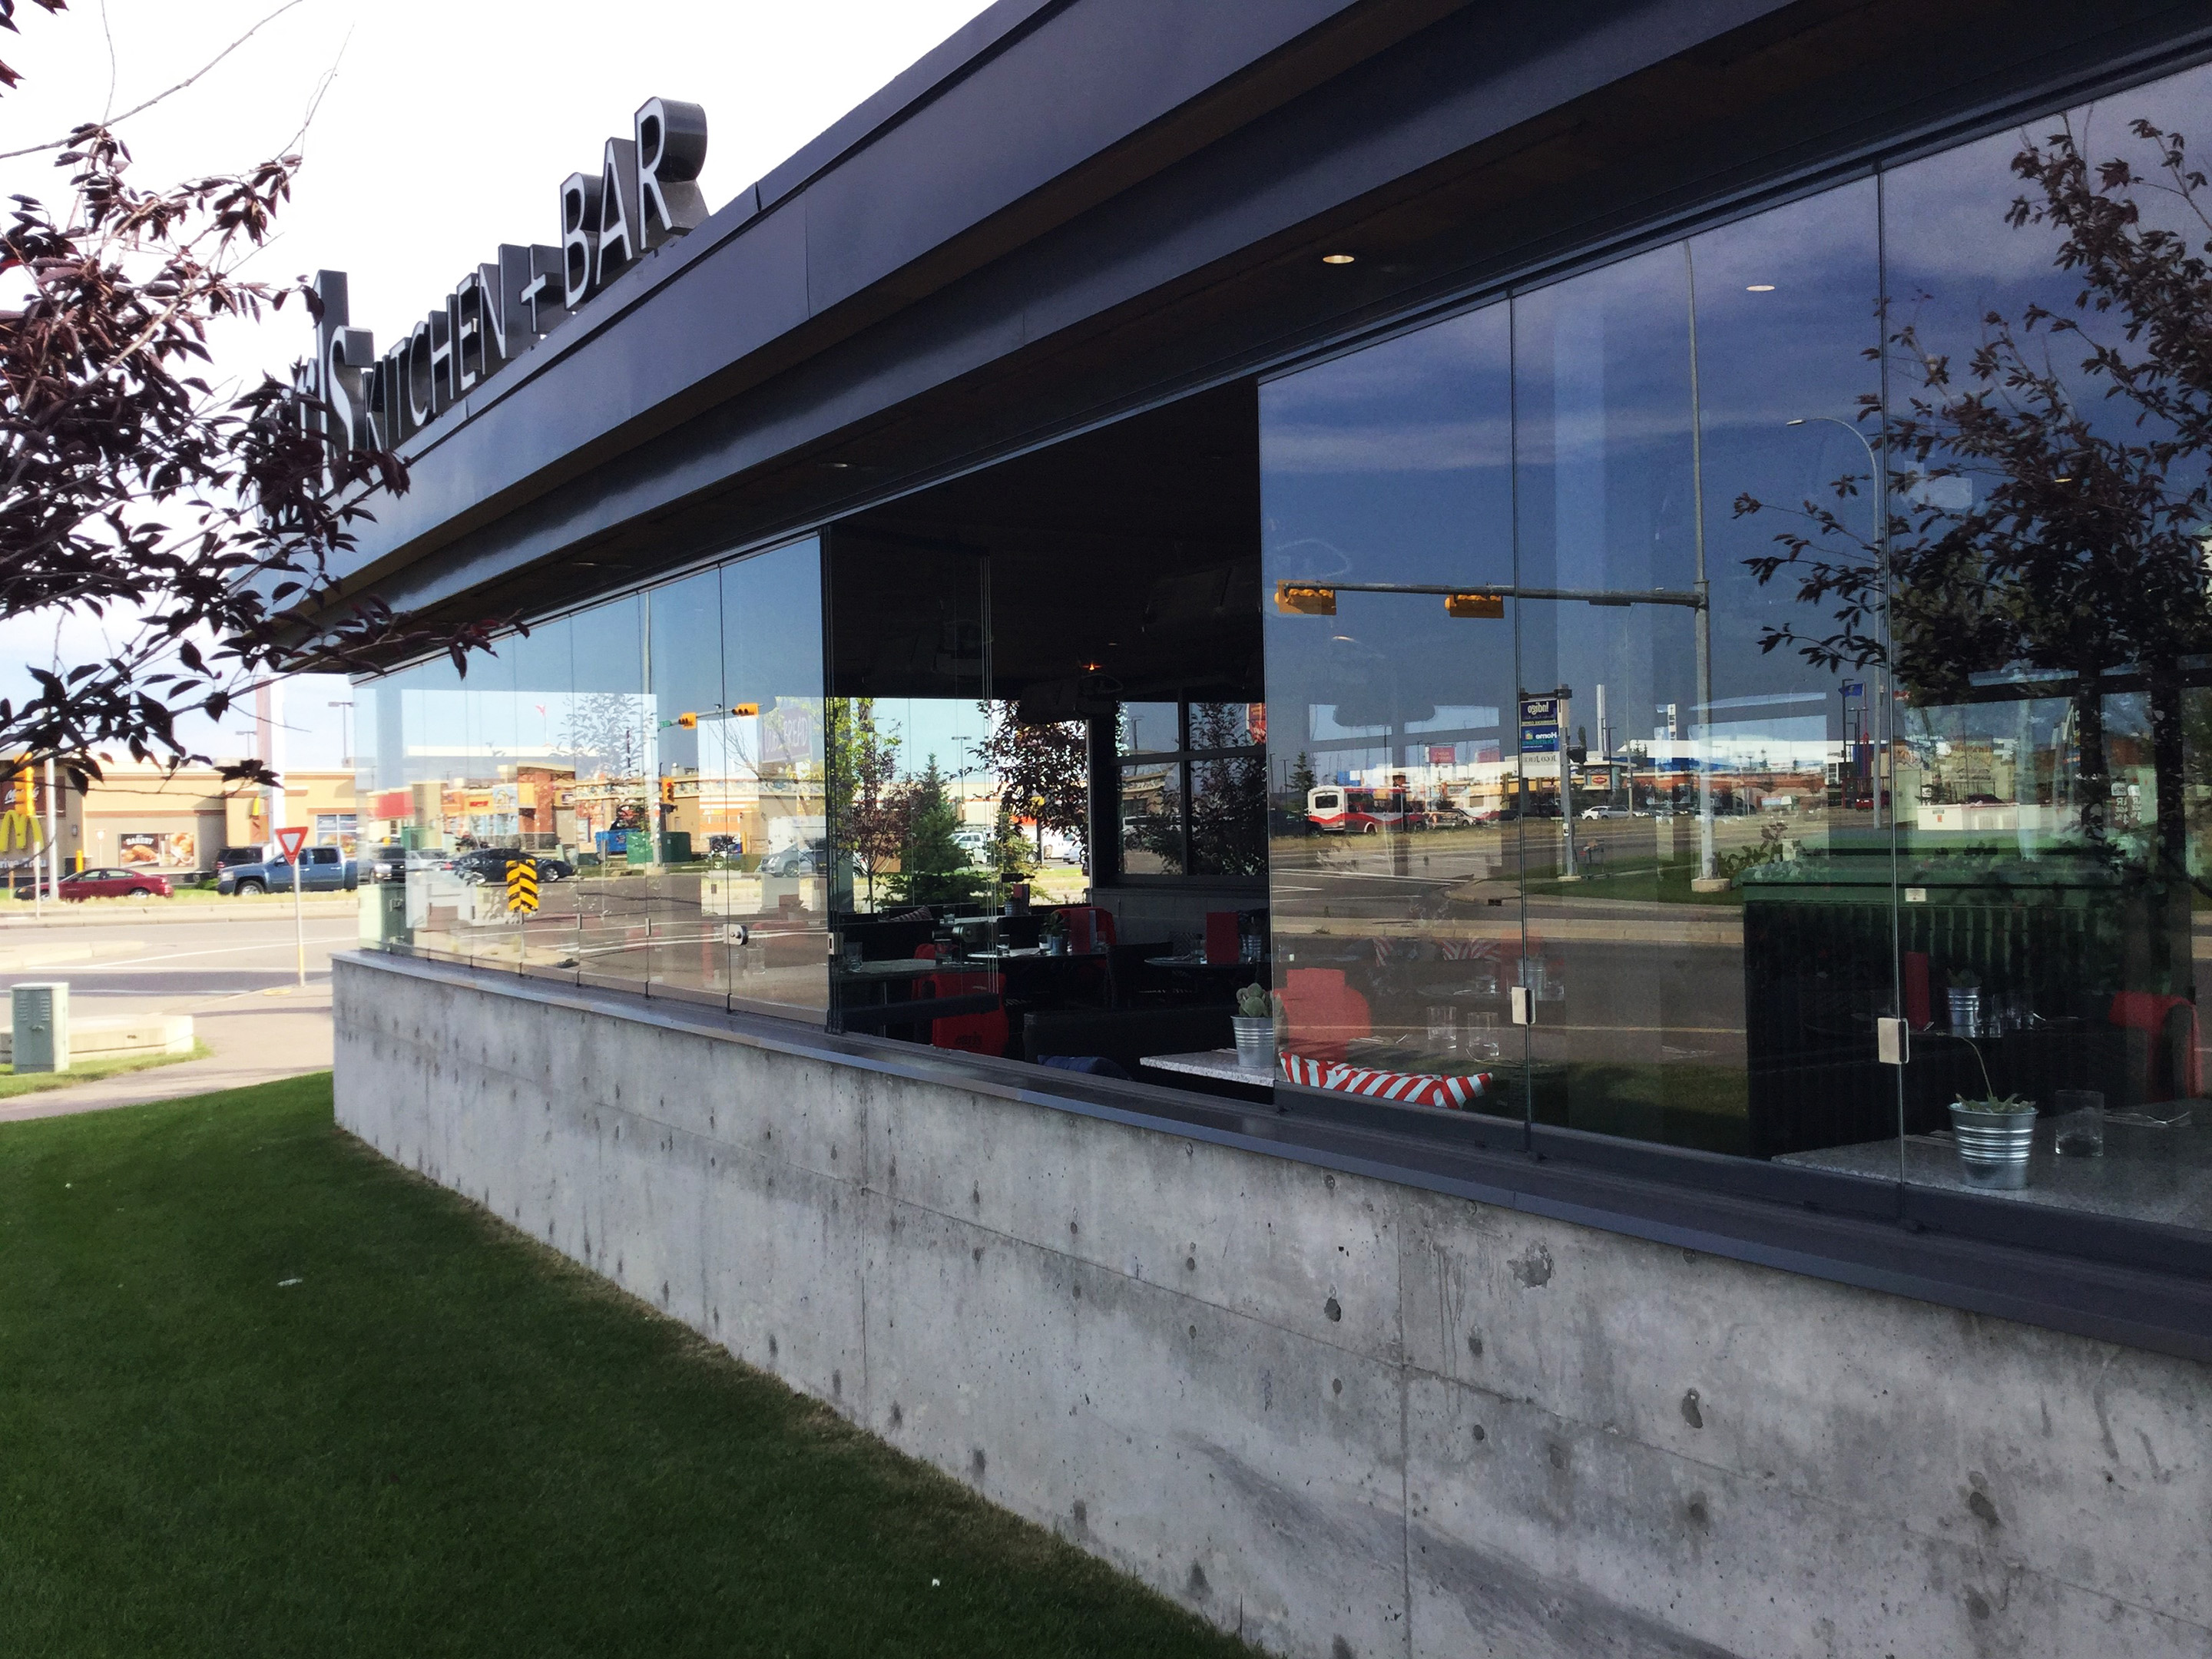 restaurant, restaurant patio enclosure, enclose business restaurant, extend patio season